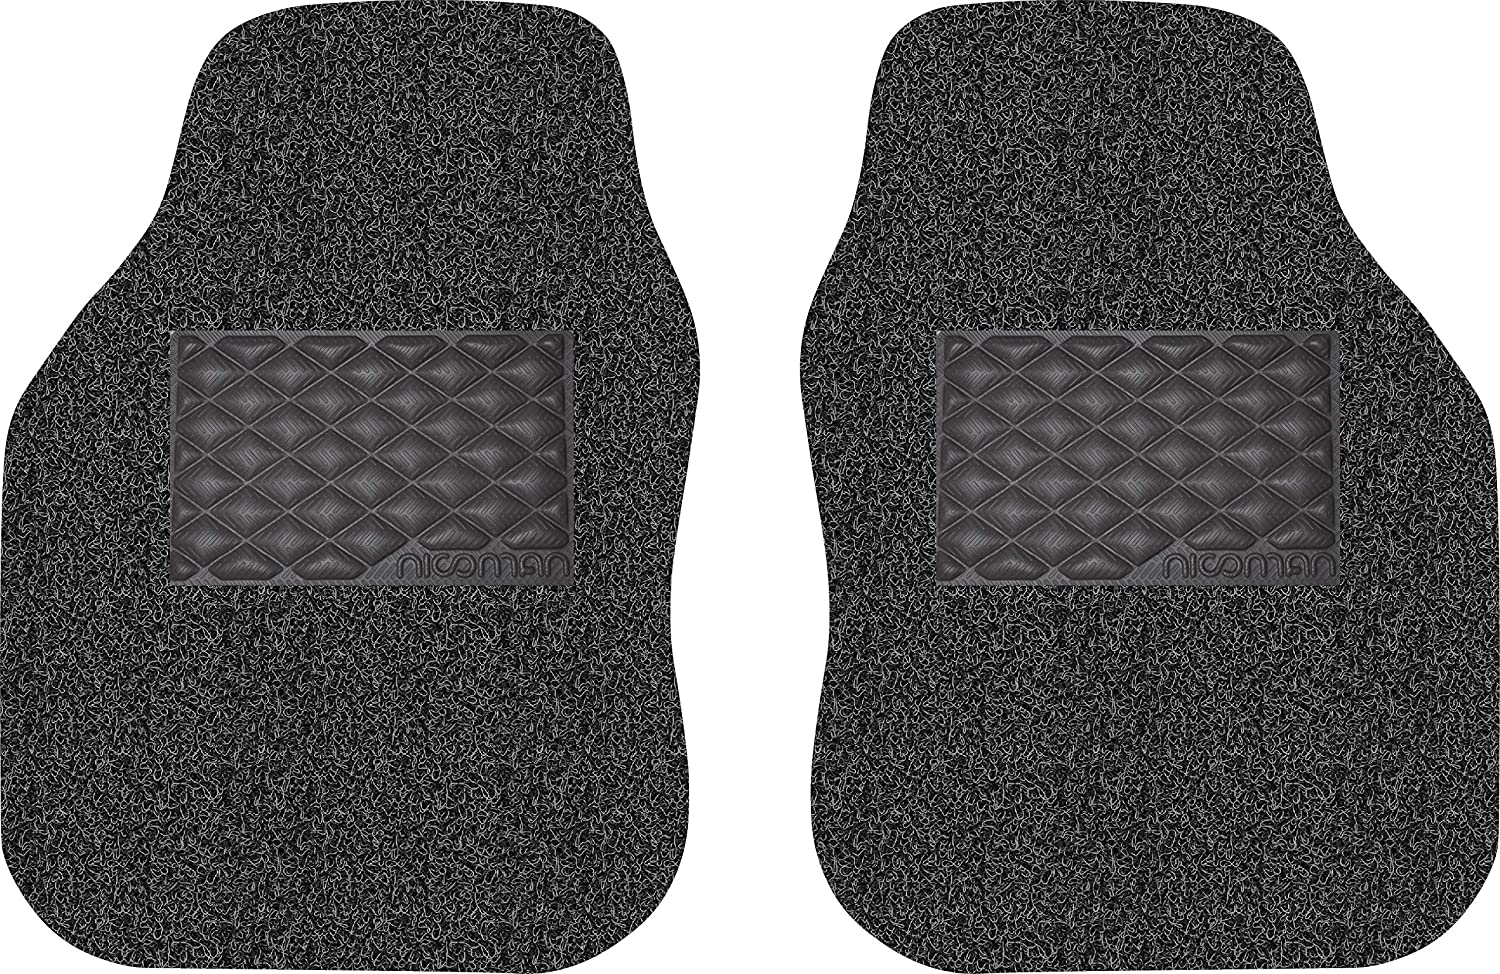 Nicoman UNI-1-CUT-BK-RIGHT Car Mat, Black, Opt1-Driver Side 1-Piece NICOMAN_Ltd